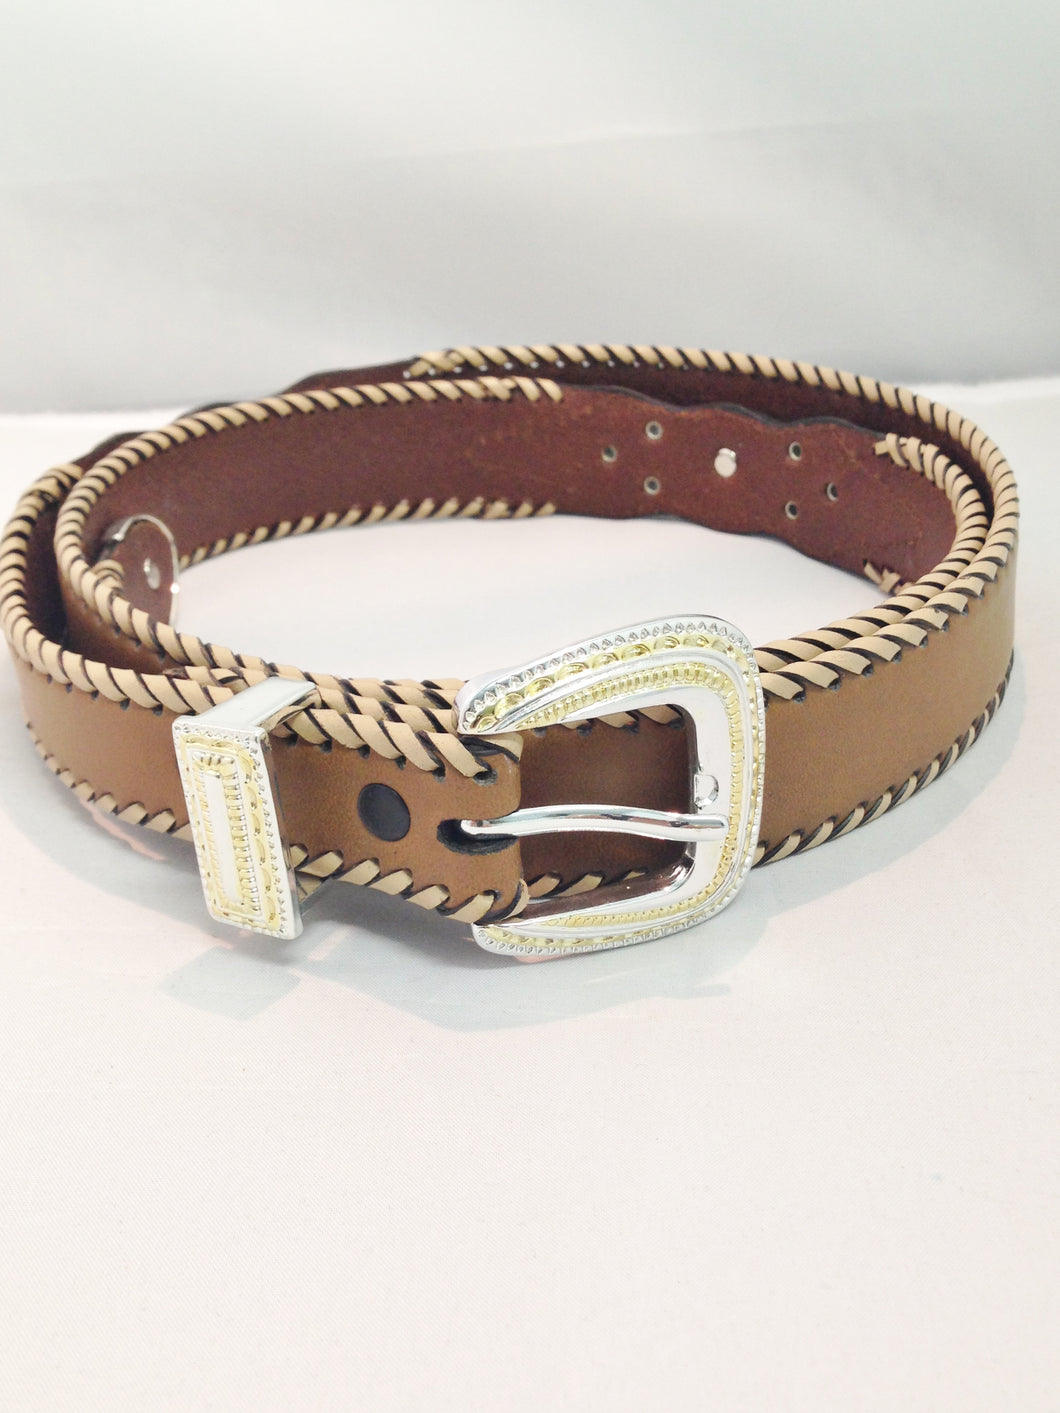 Brown Leather Southwestern Style Belts www.hersandhistreasures.com/collections/belt-buckles